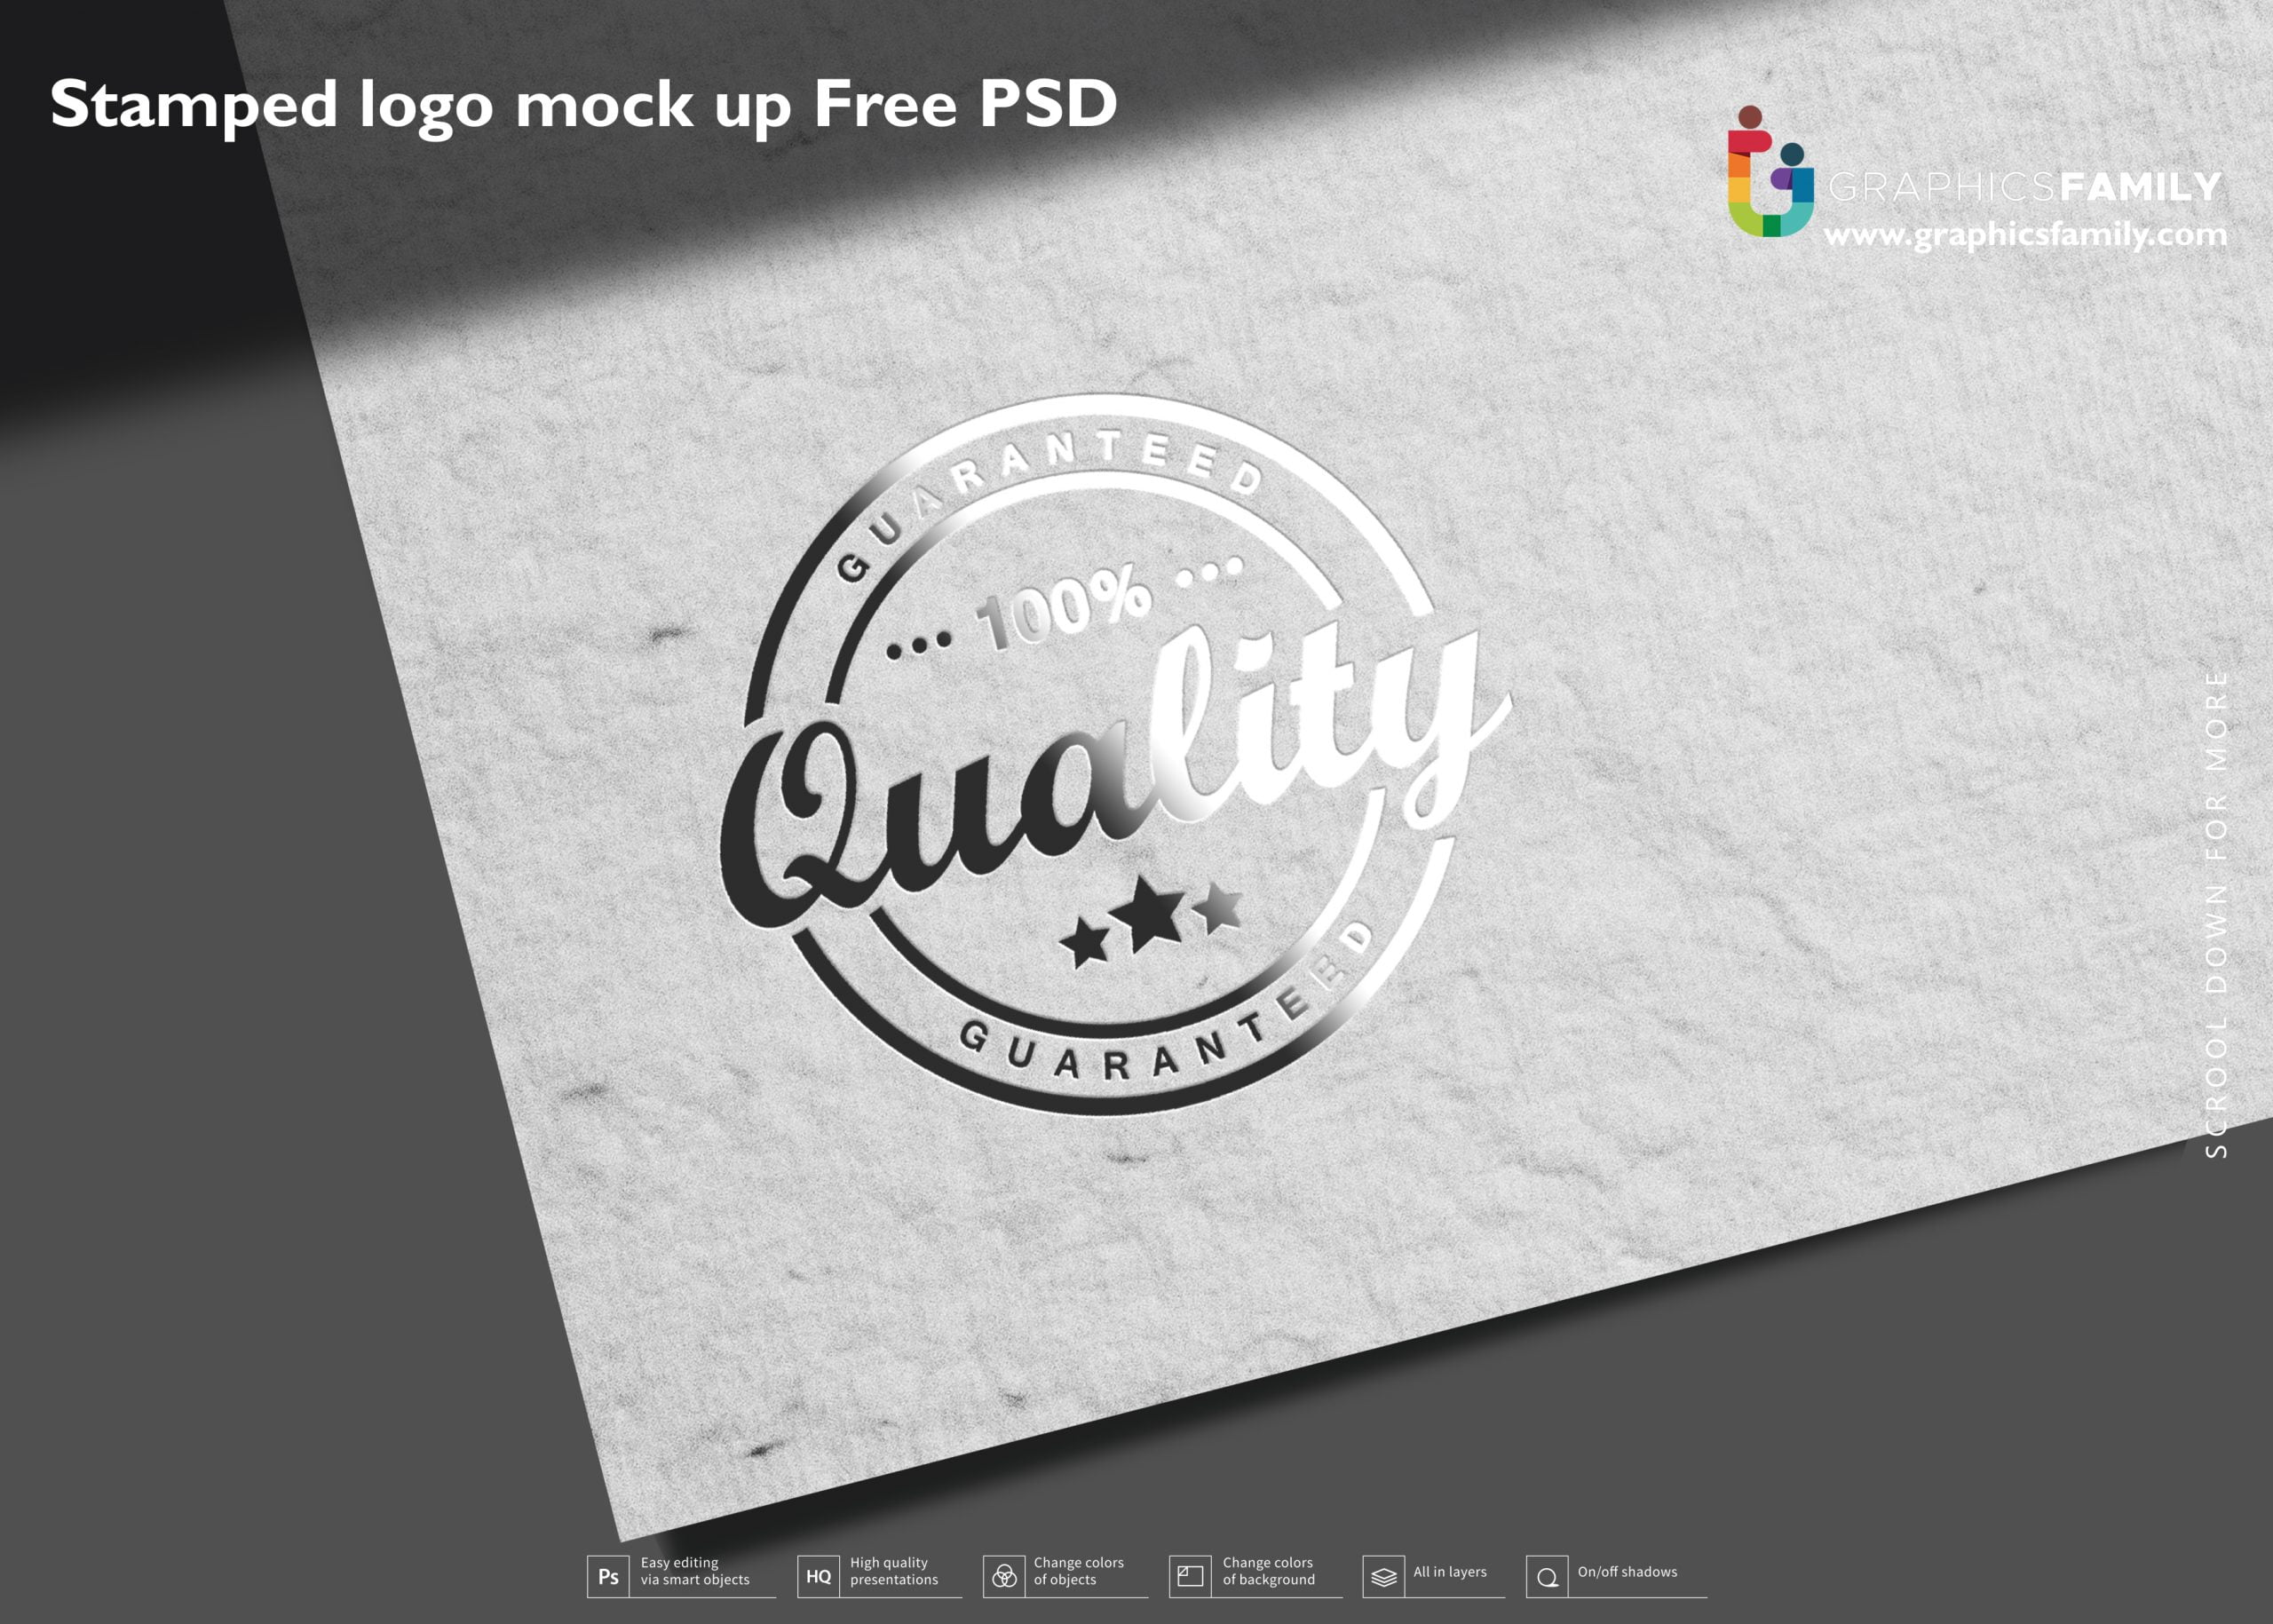 Stamped logo mock up Free PSD Download